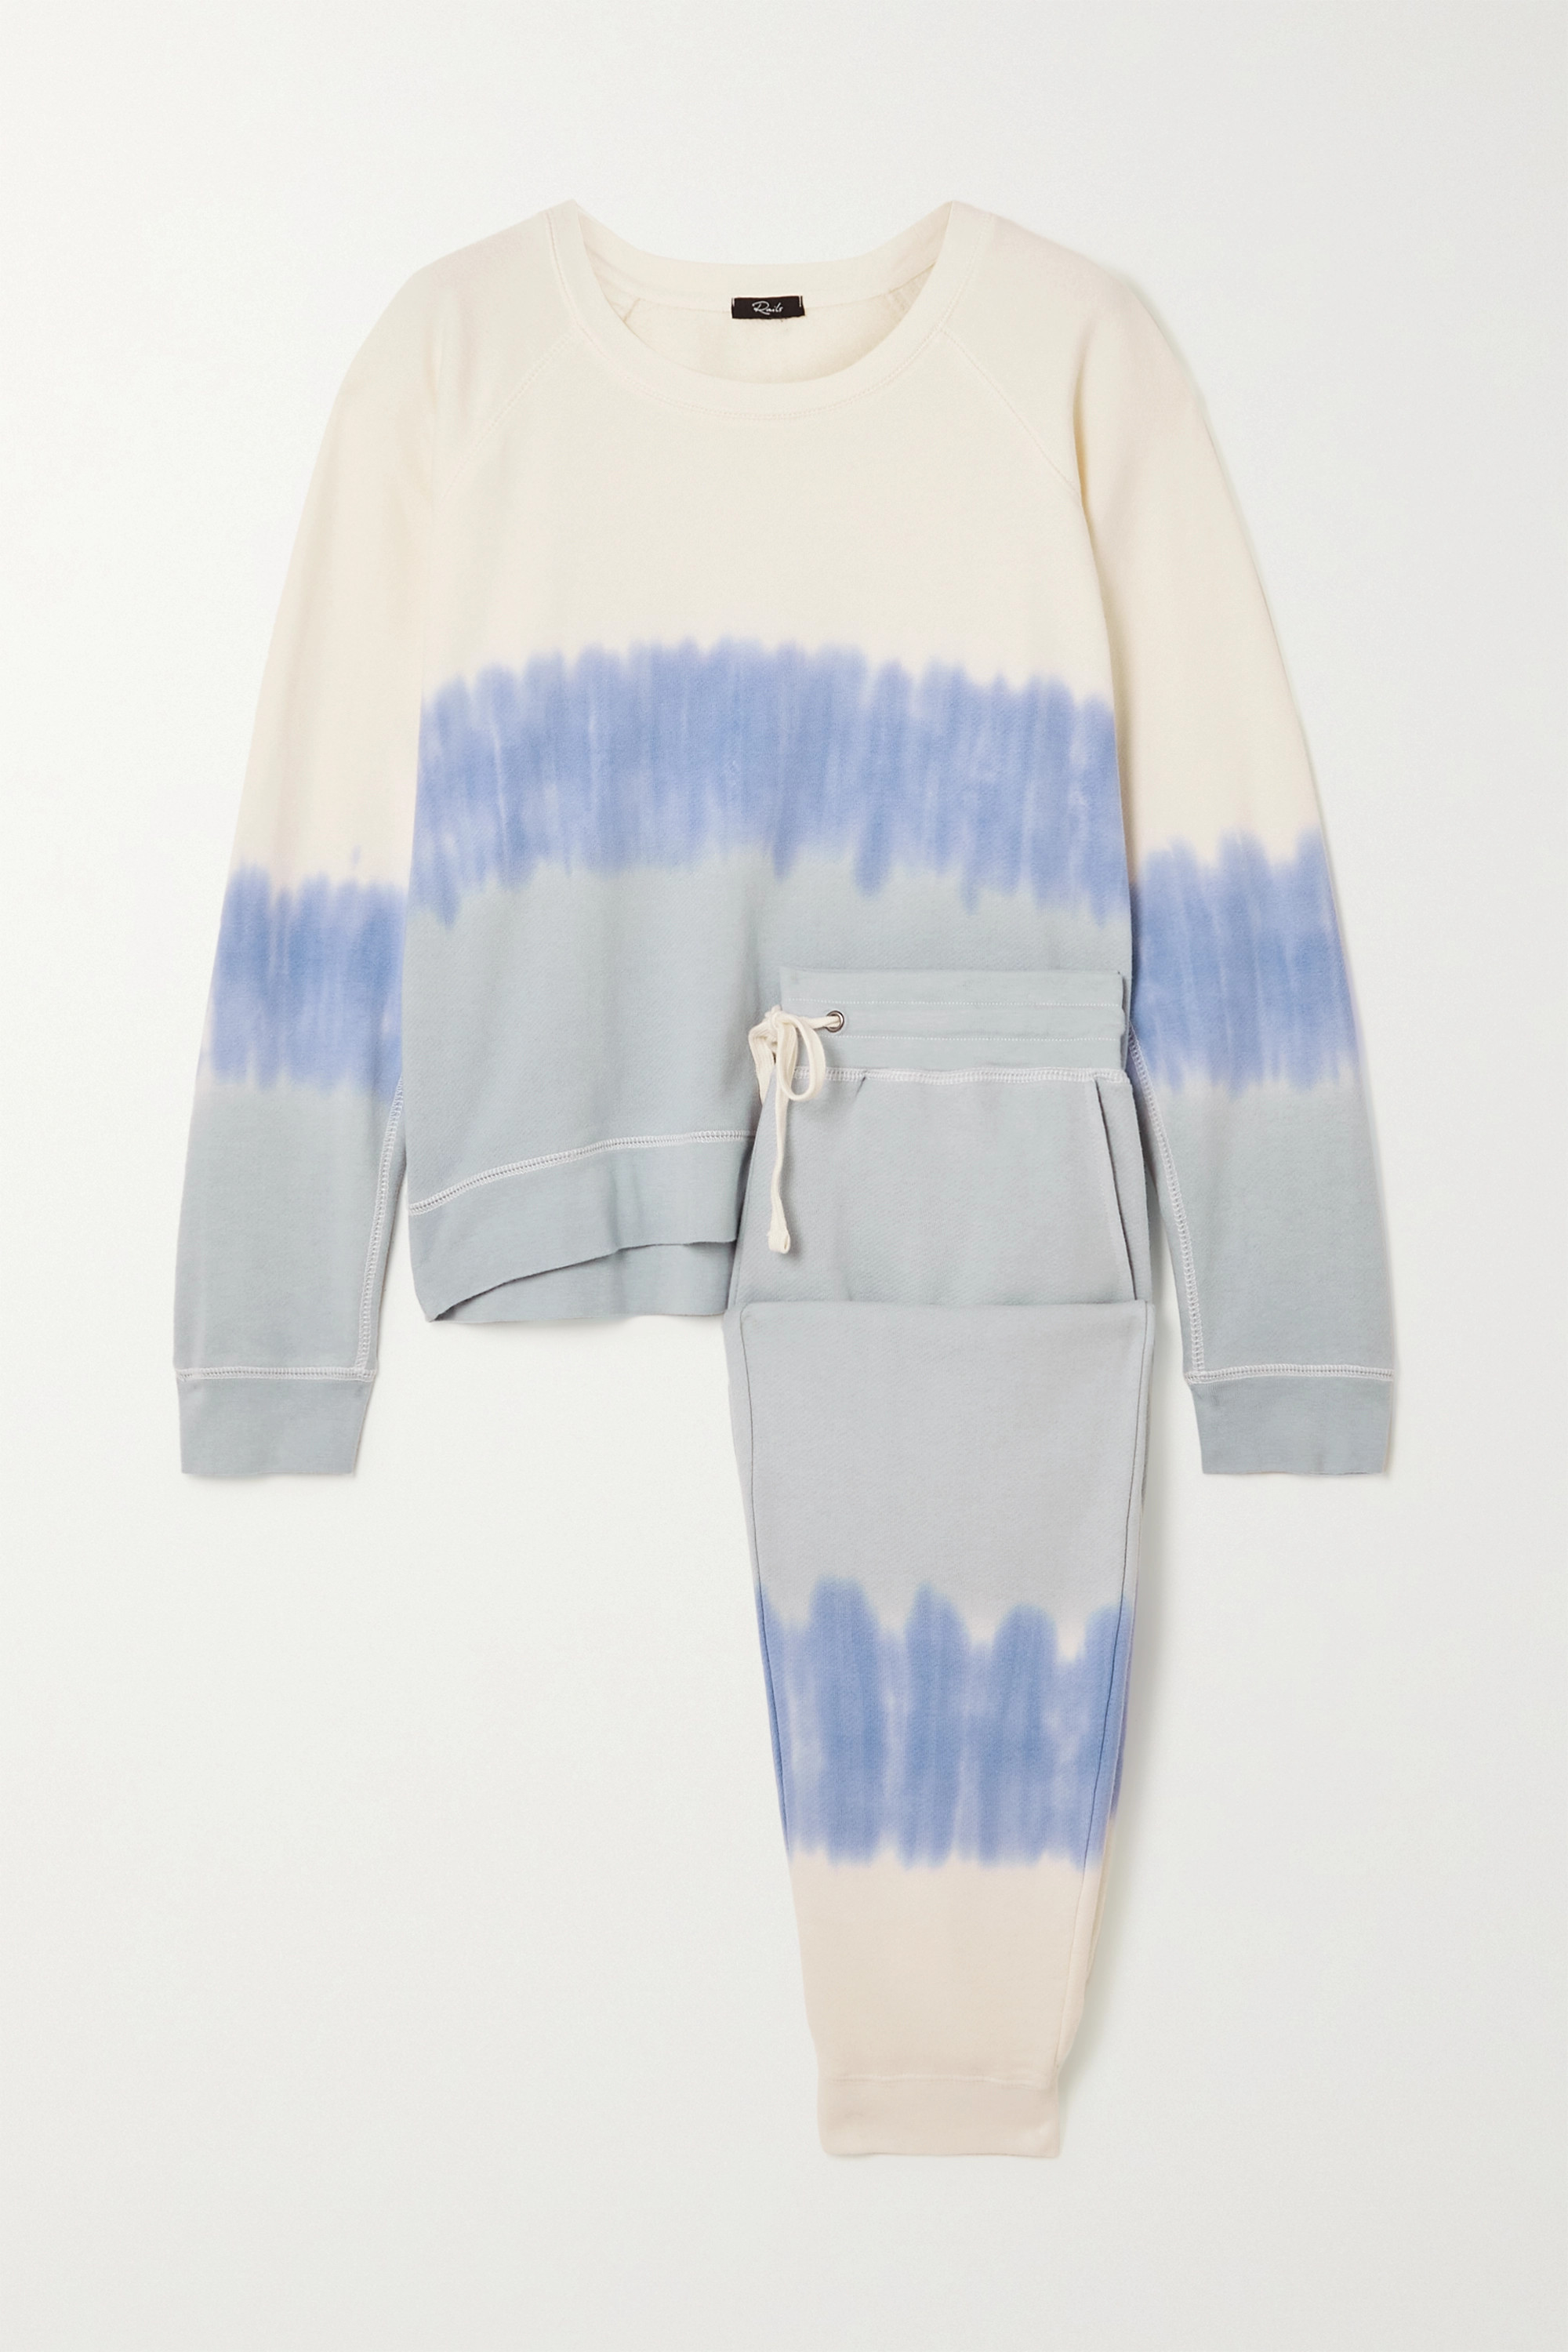 Rails - Theo Oakland tie-dyed cotton and modal-blend jersey sweatshirt and track pants set